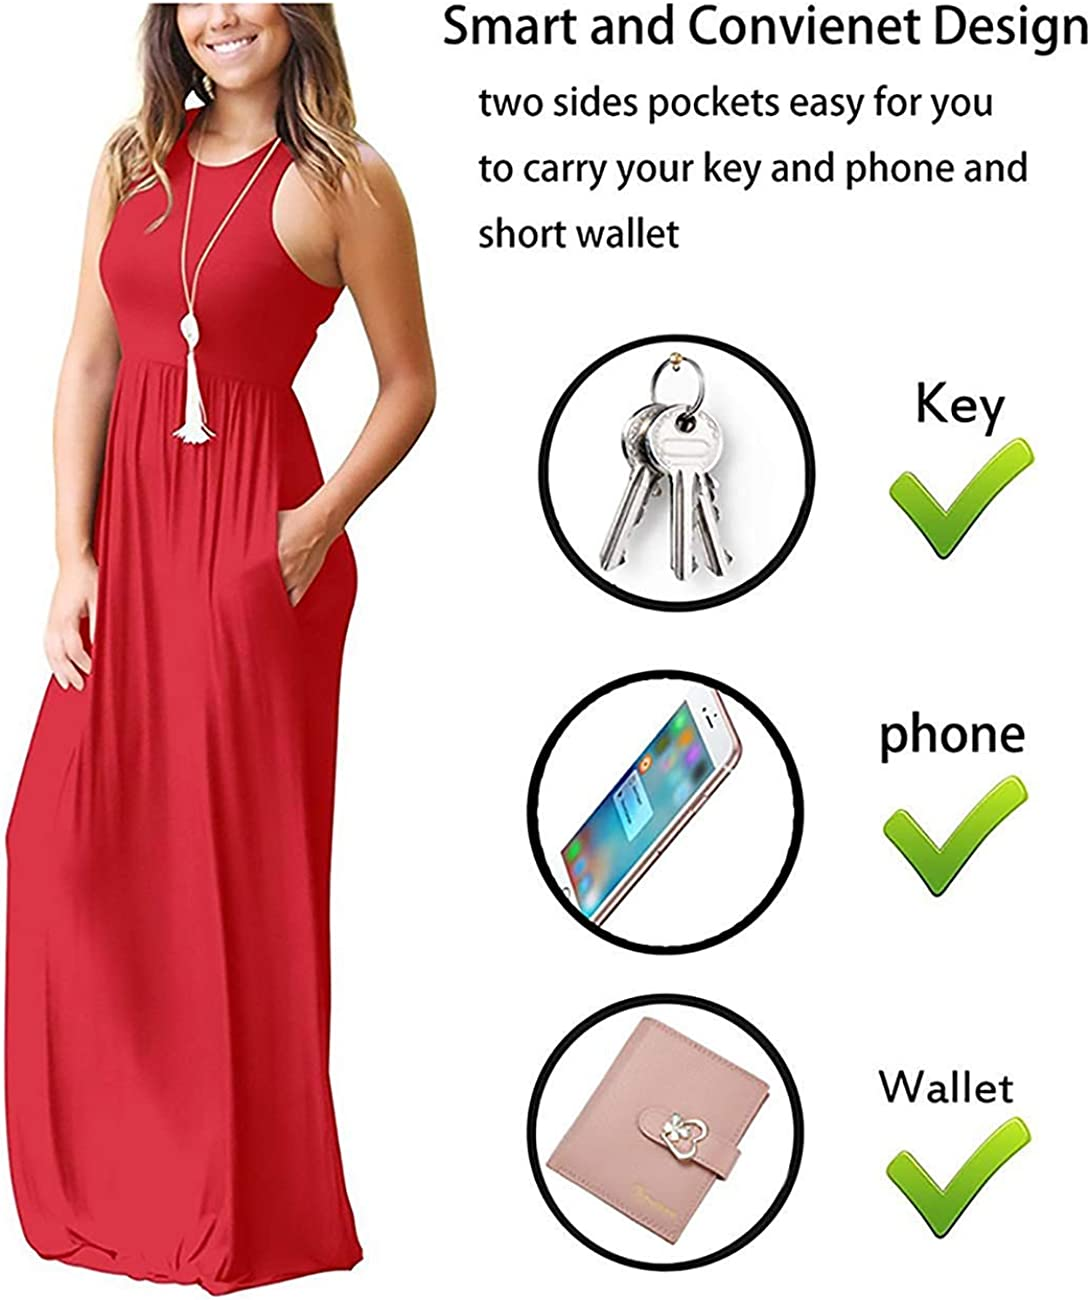 GRECERELLE Womens Sleeveless Racerback Loose Plain Maxi Dresses Casual Long Dresses with Pockets